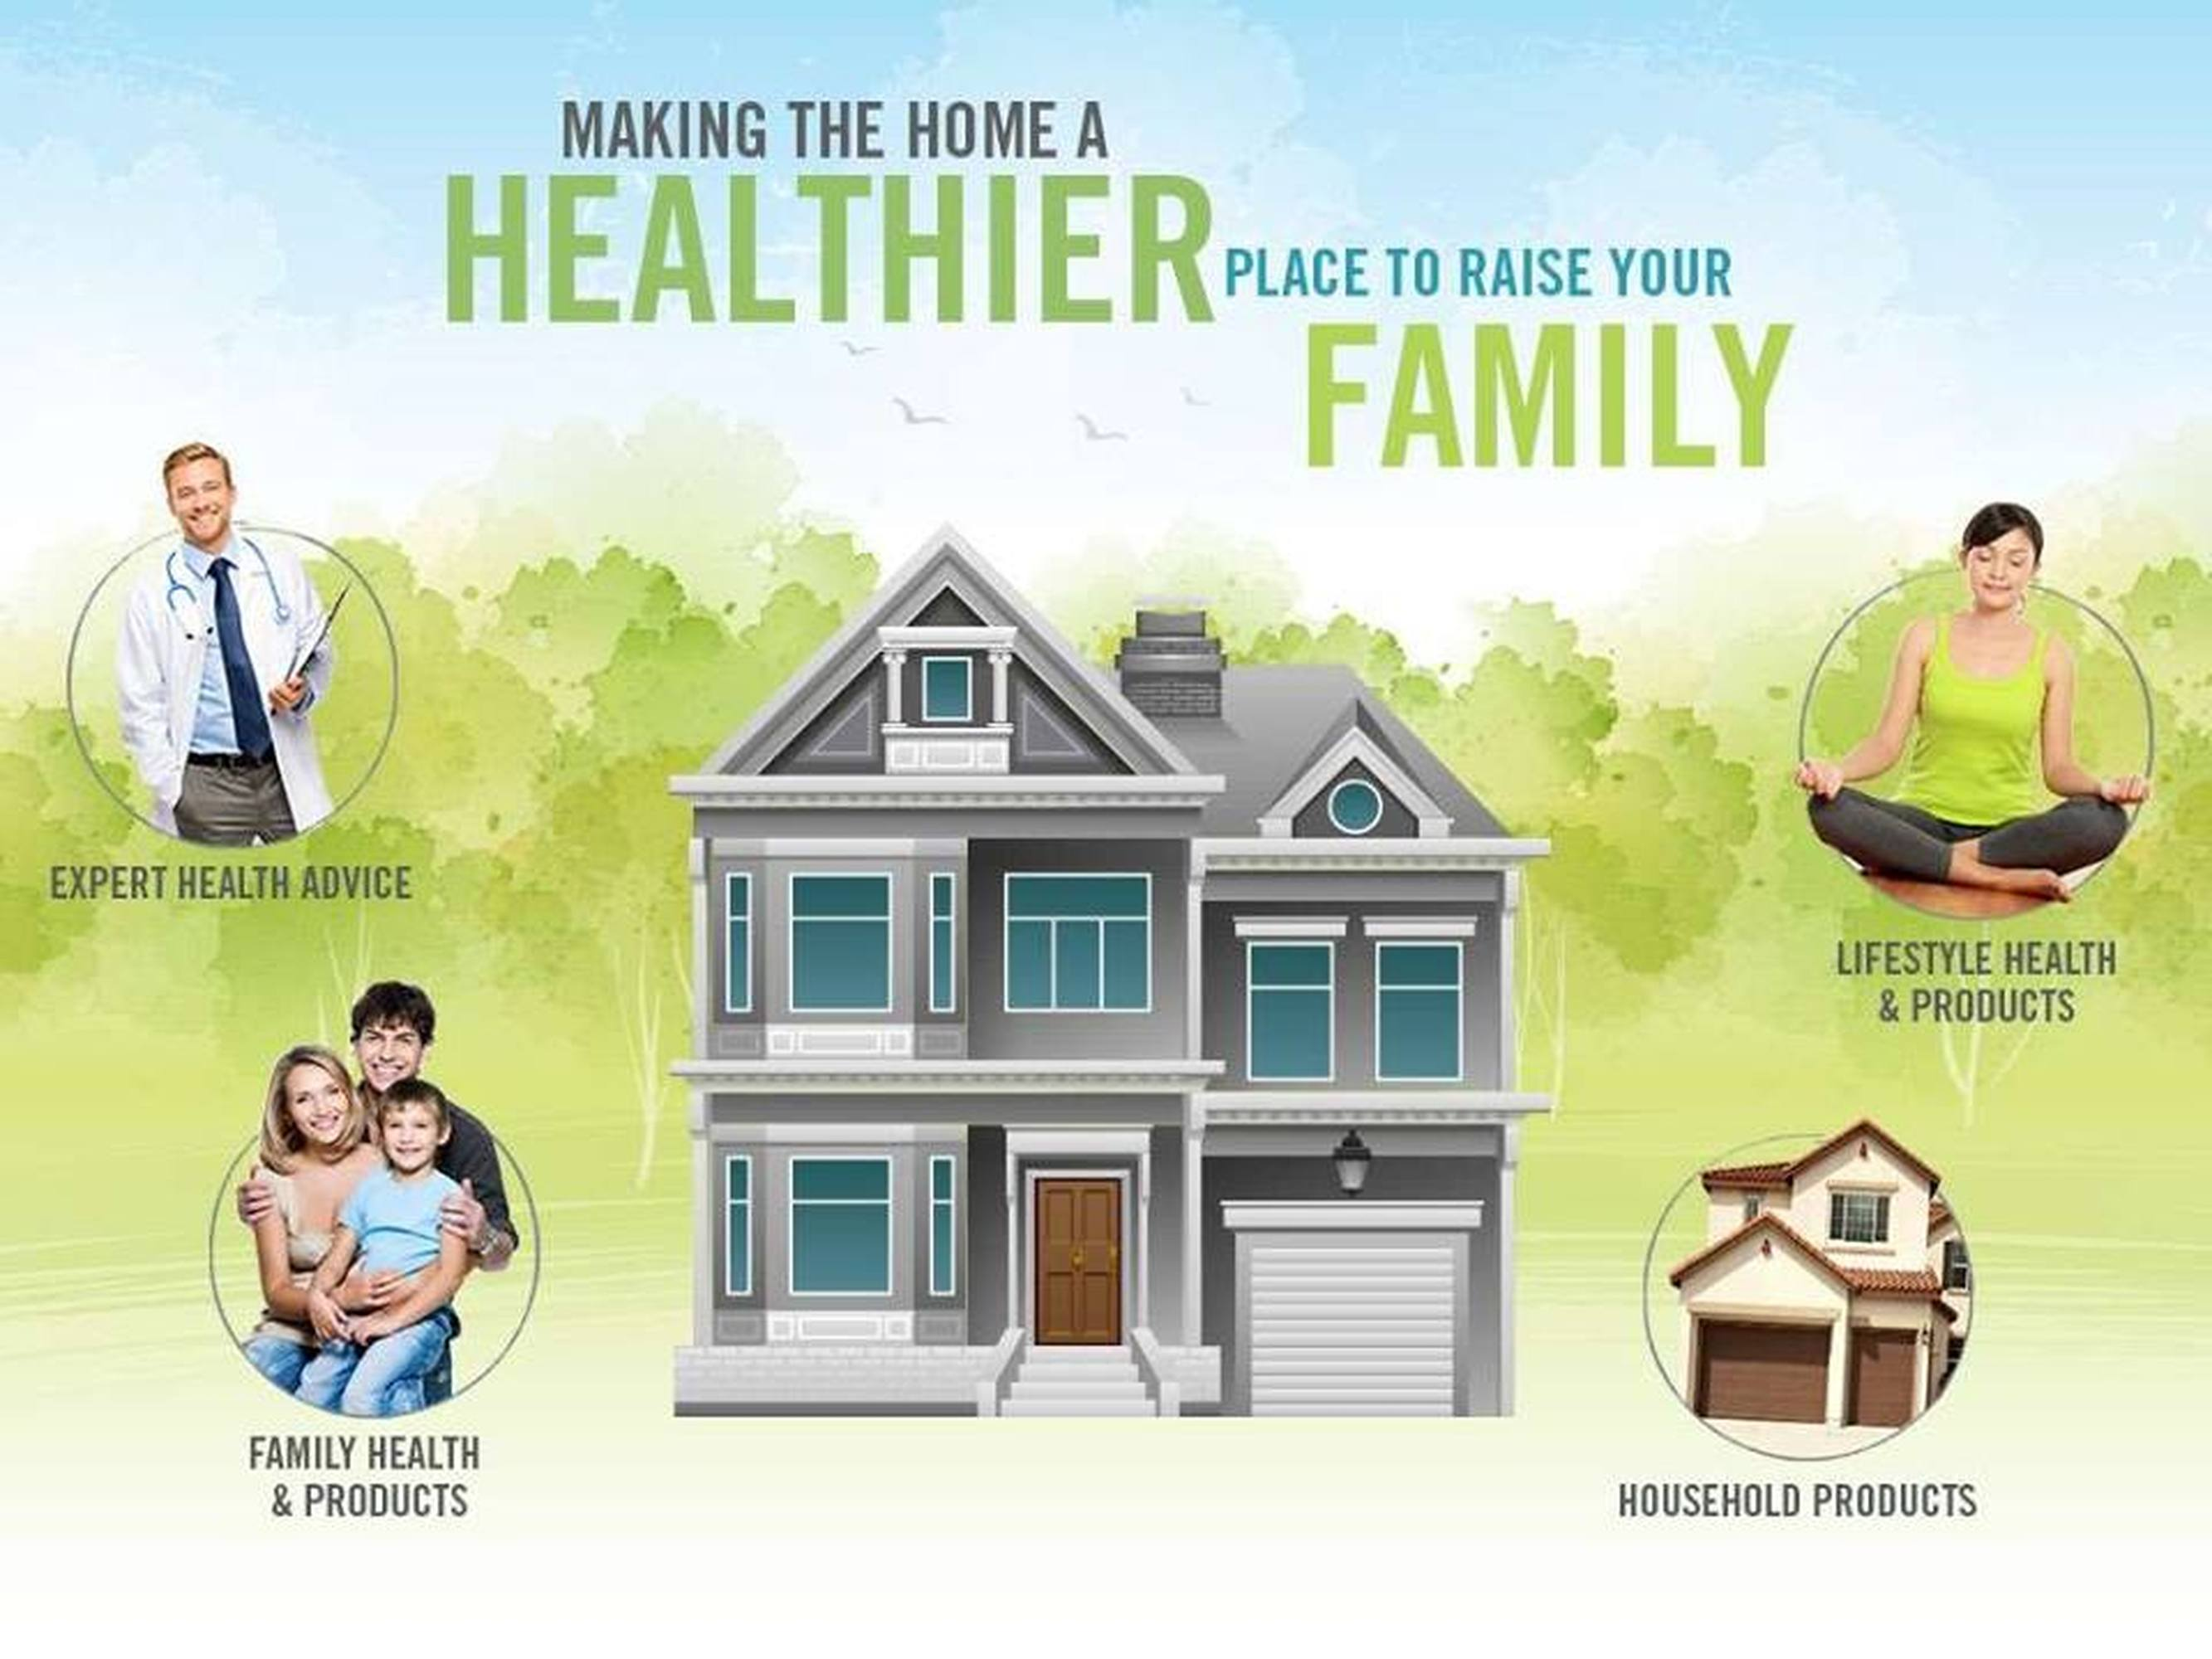 Healthy Home and Healthy Family by Clint Fuqua in Dallas TX